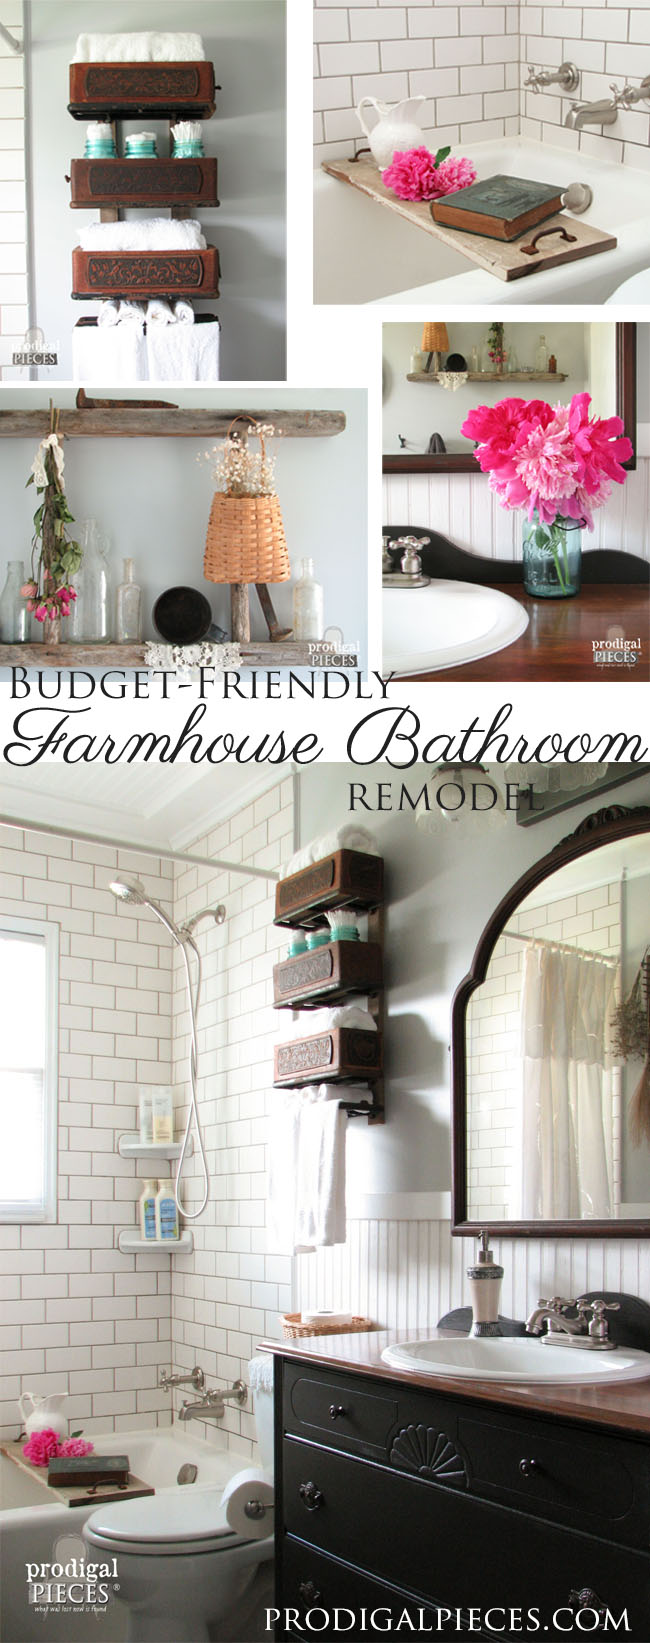 Budget-Friendly DIY Farmhouse Style Bathroom Makeover by Prodigal Pieces | www.prodigalpieces.com